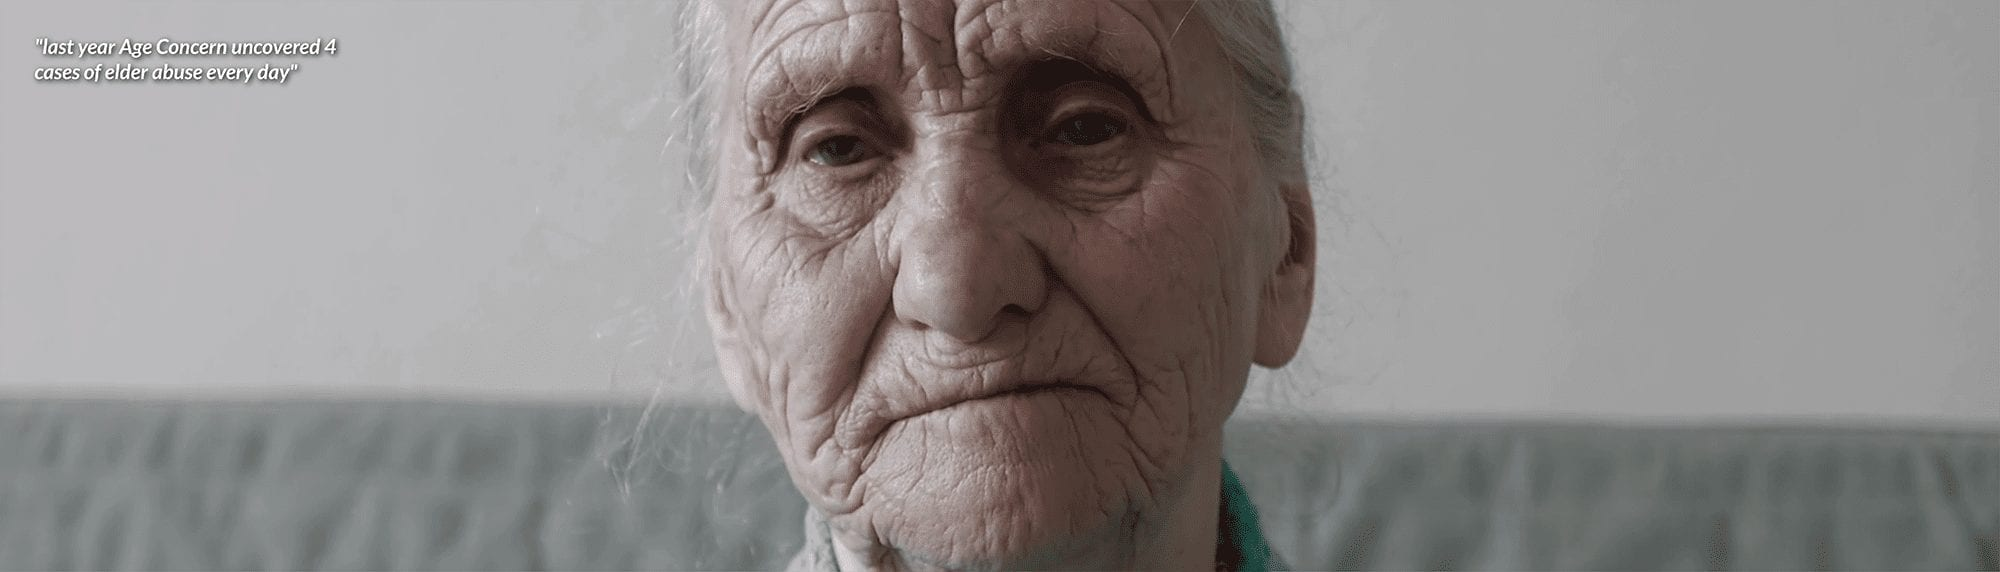 last year Age Concern uncovered 4 cases of elder abuse every day